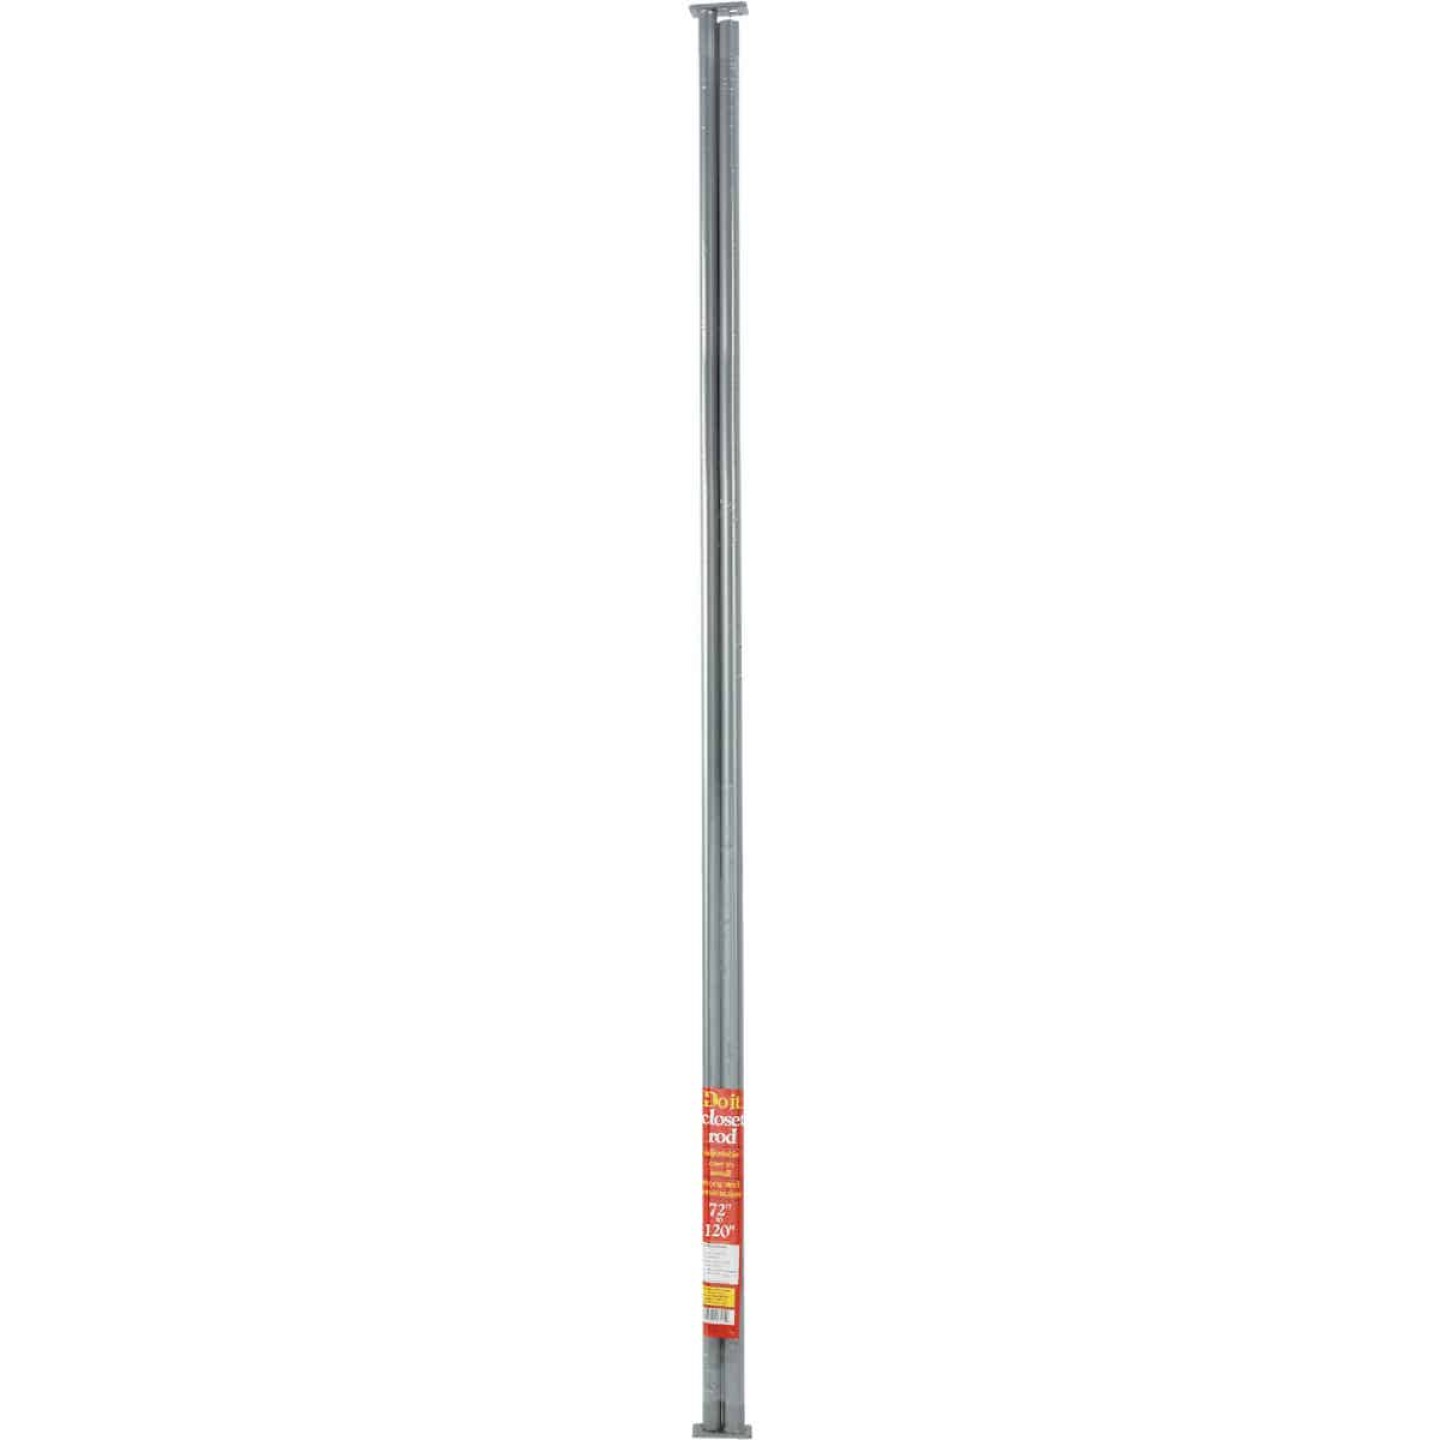 Do it 72 In. to 120 In. Adjustable Closet Rod, Lustra Image 2